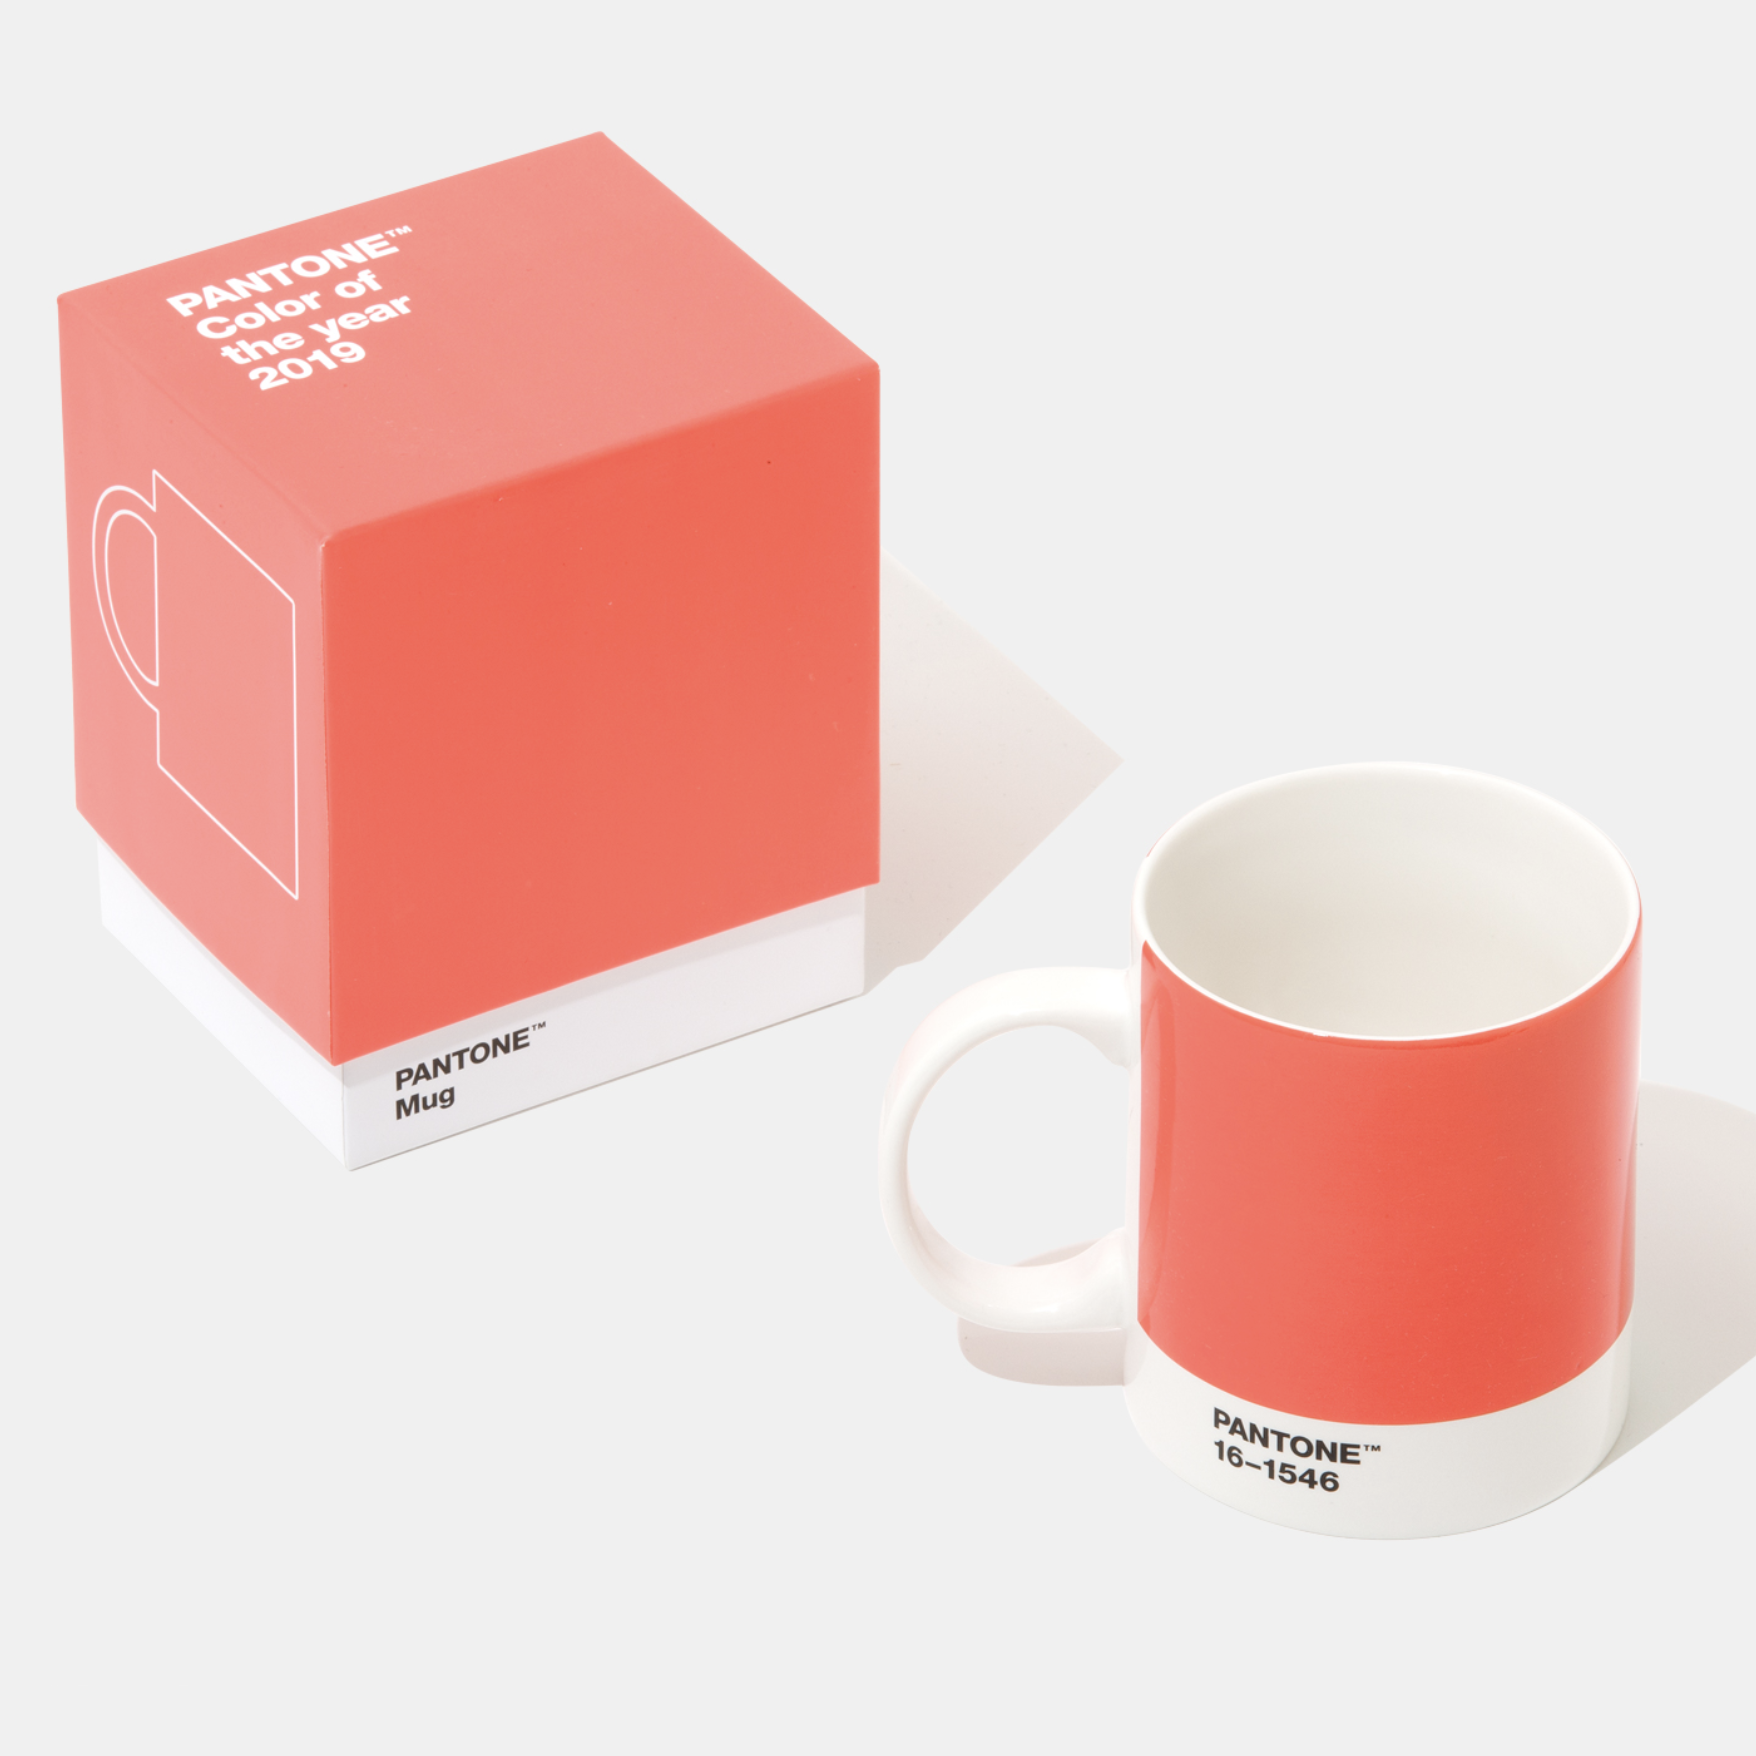 Screenshot 2018-12-06 at 17.11.28.png